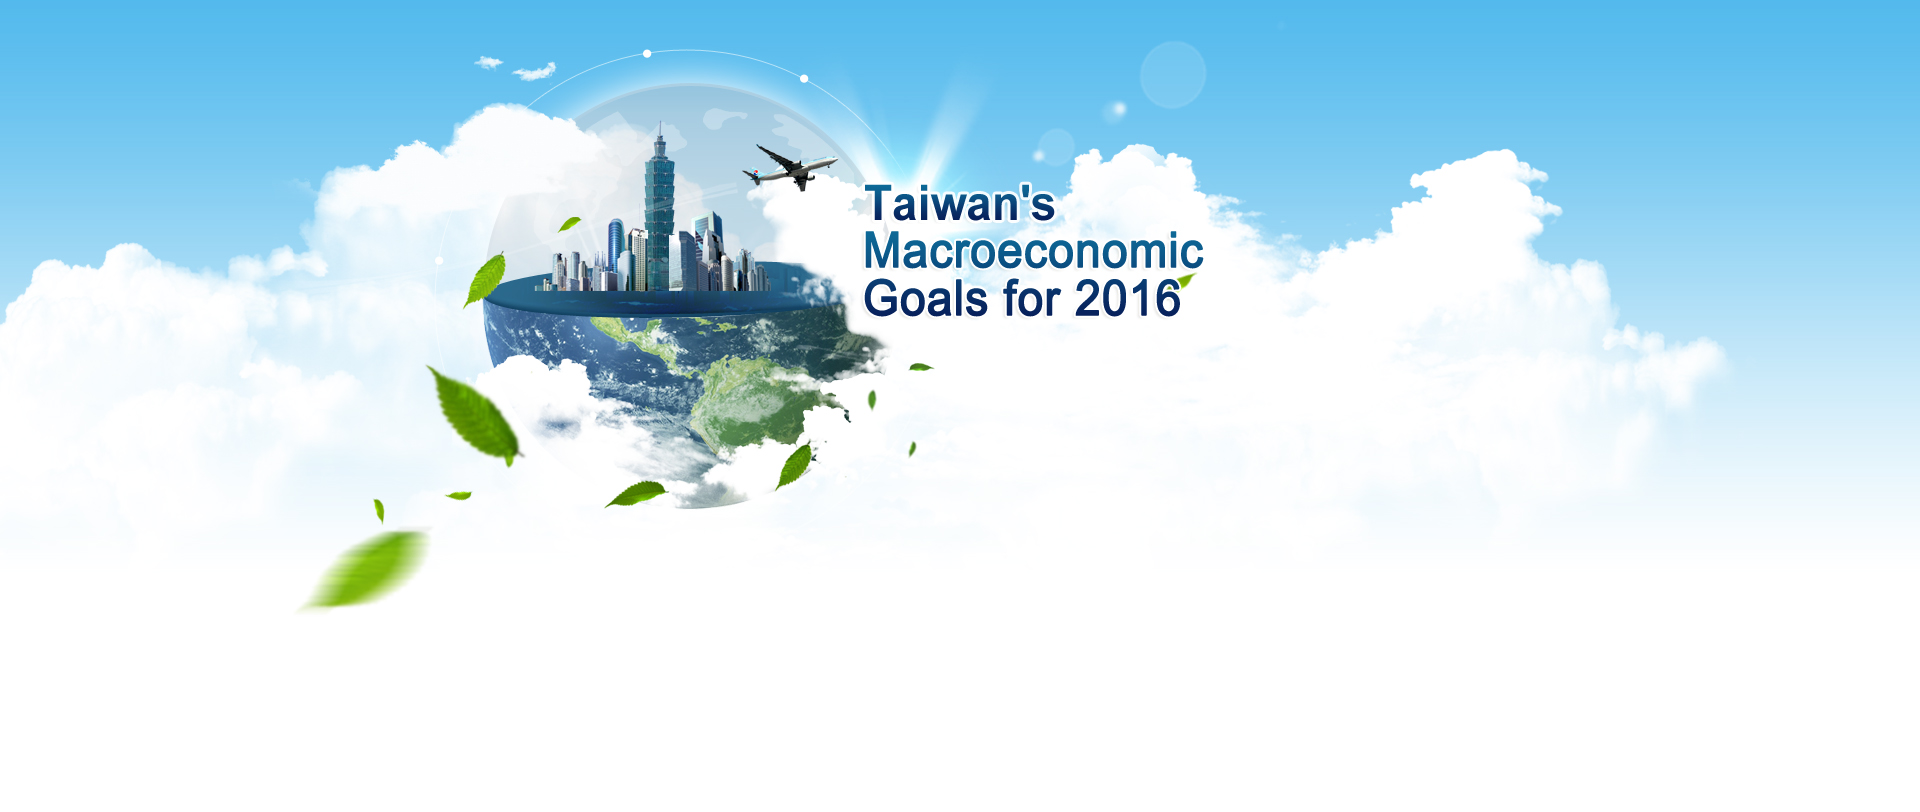 With a comprehensive consideration of domestic and foreign institutional forecasts, uncertain global economic factors, and active government policy actions, Taiwan's 2016 key macro